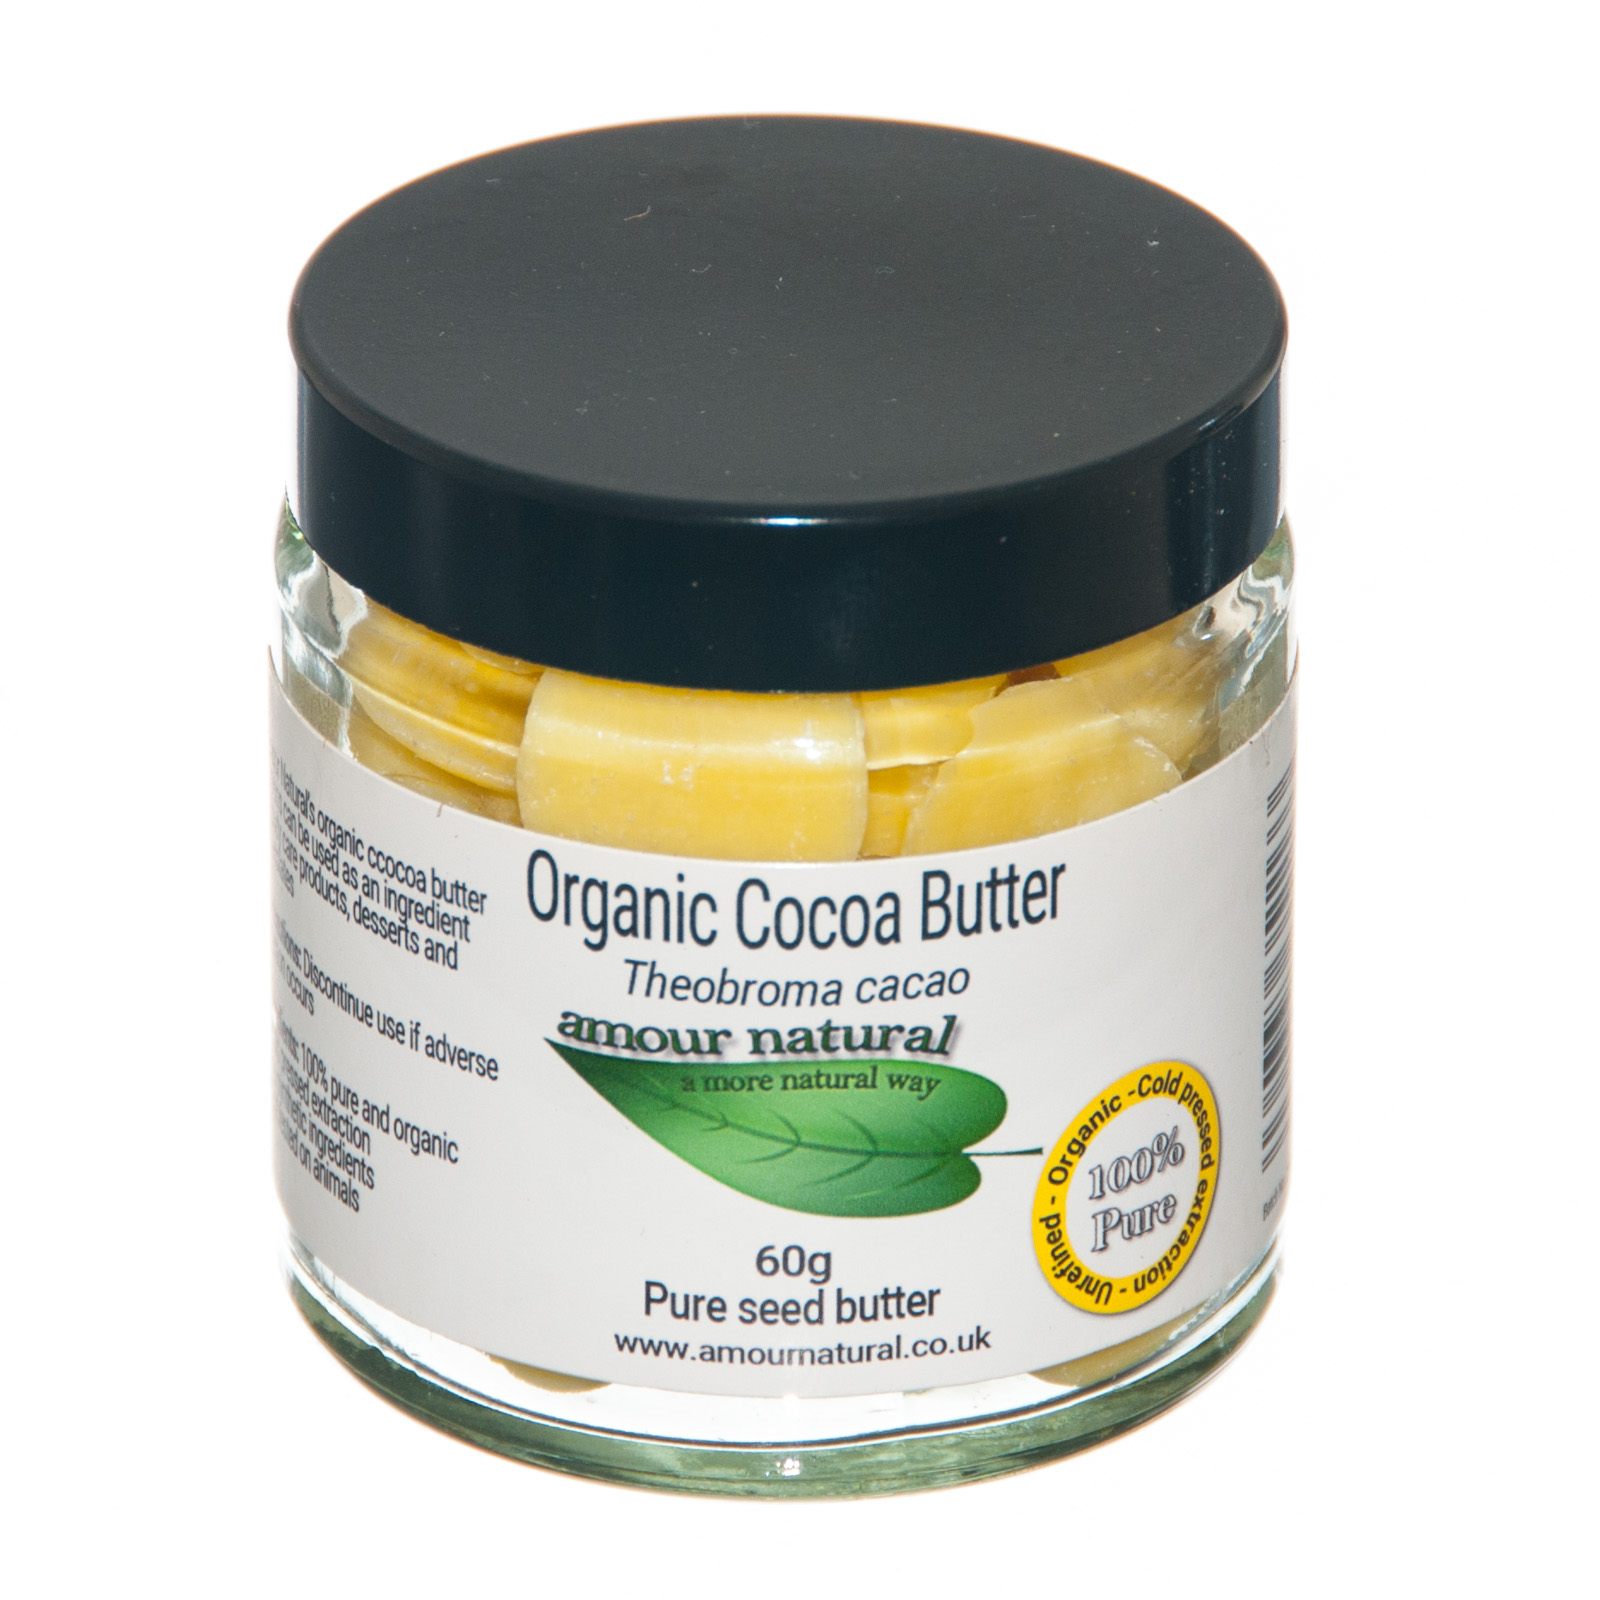 Organic Cocoa Butter Buttons 60g